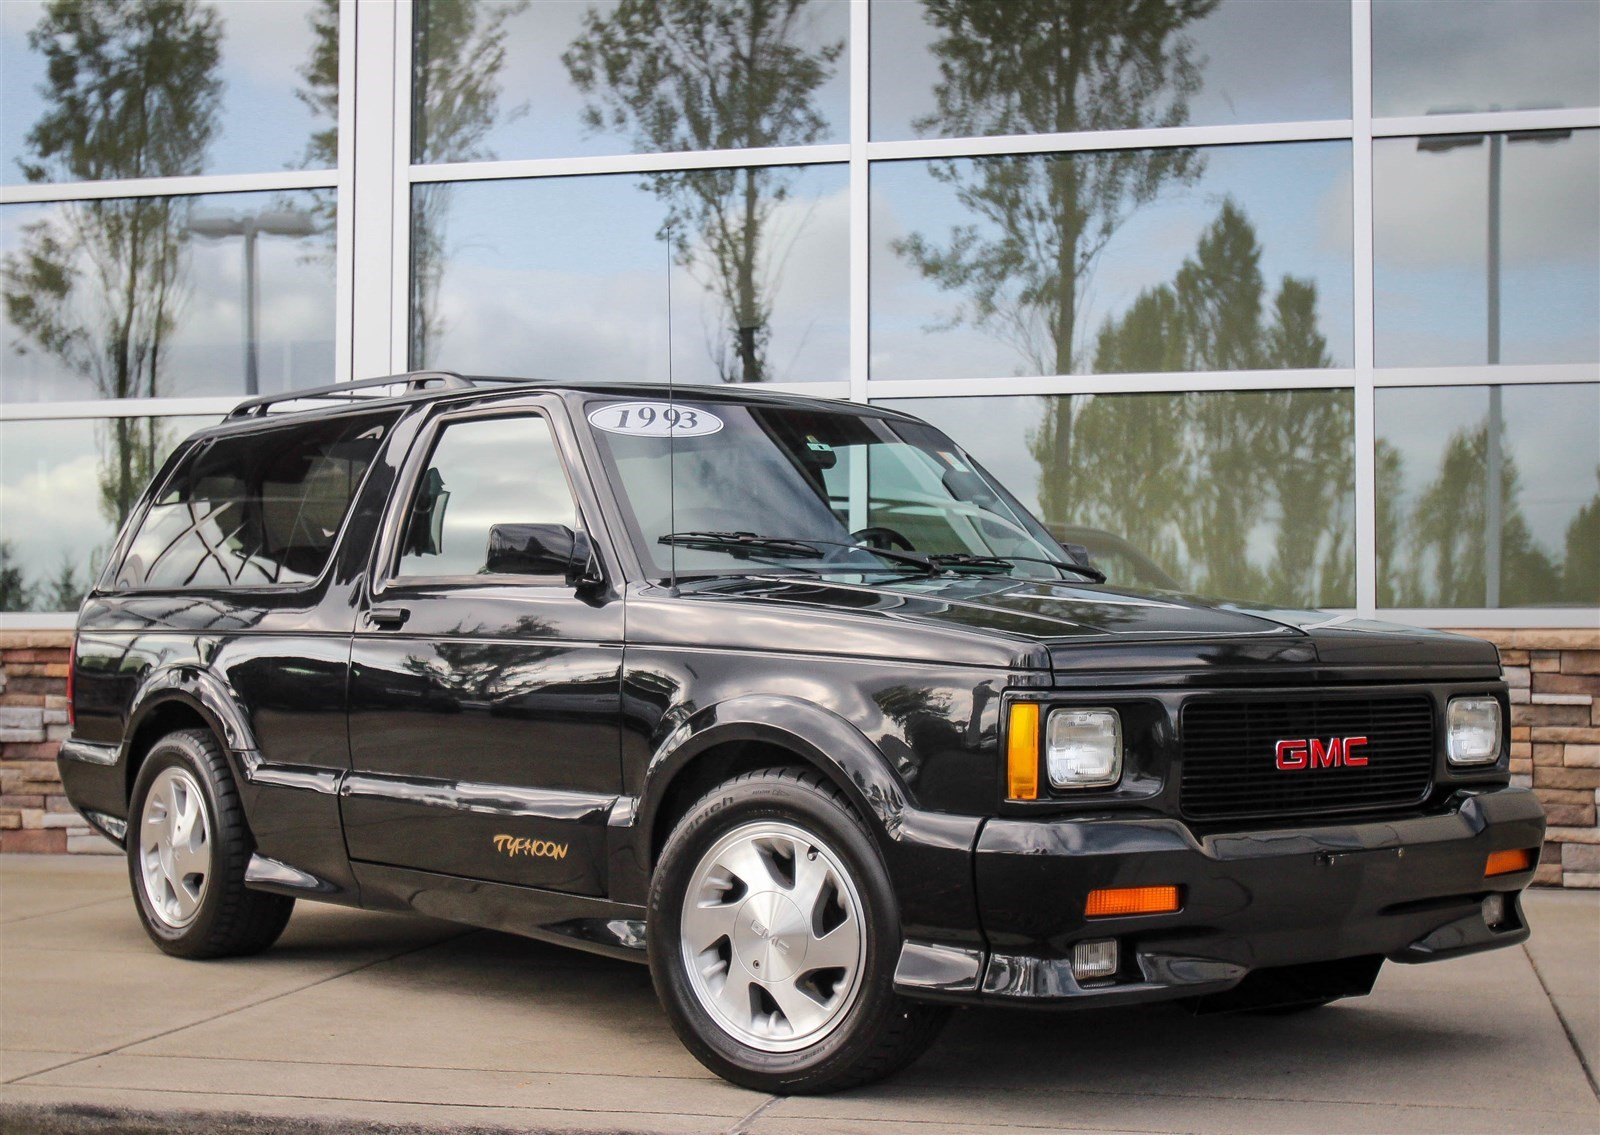 Clint Eastwood Drives a GMC Typhoon